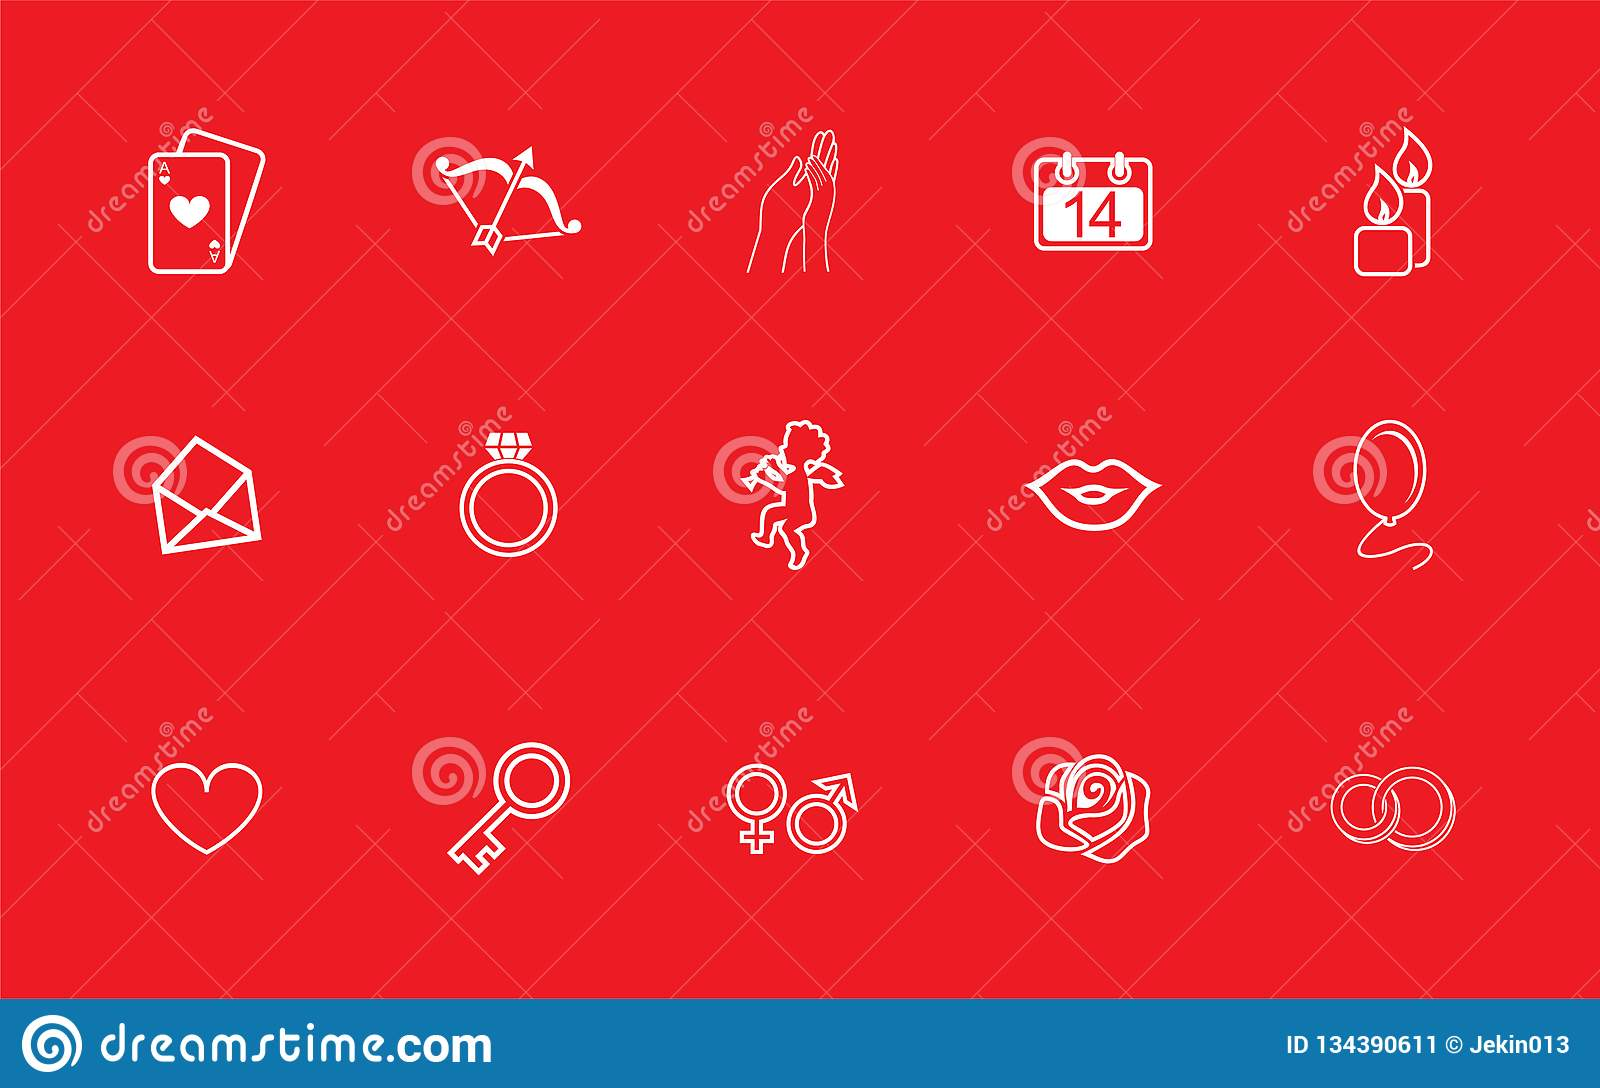 A set of vector pictures on love